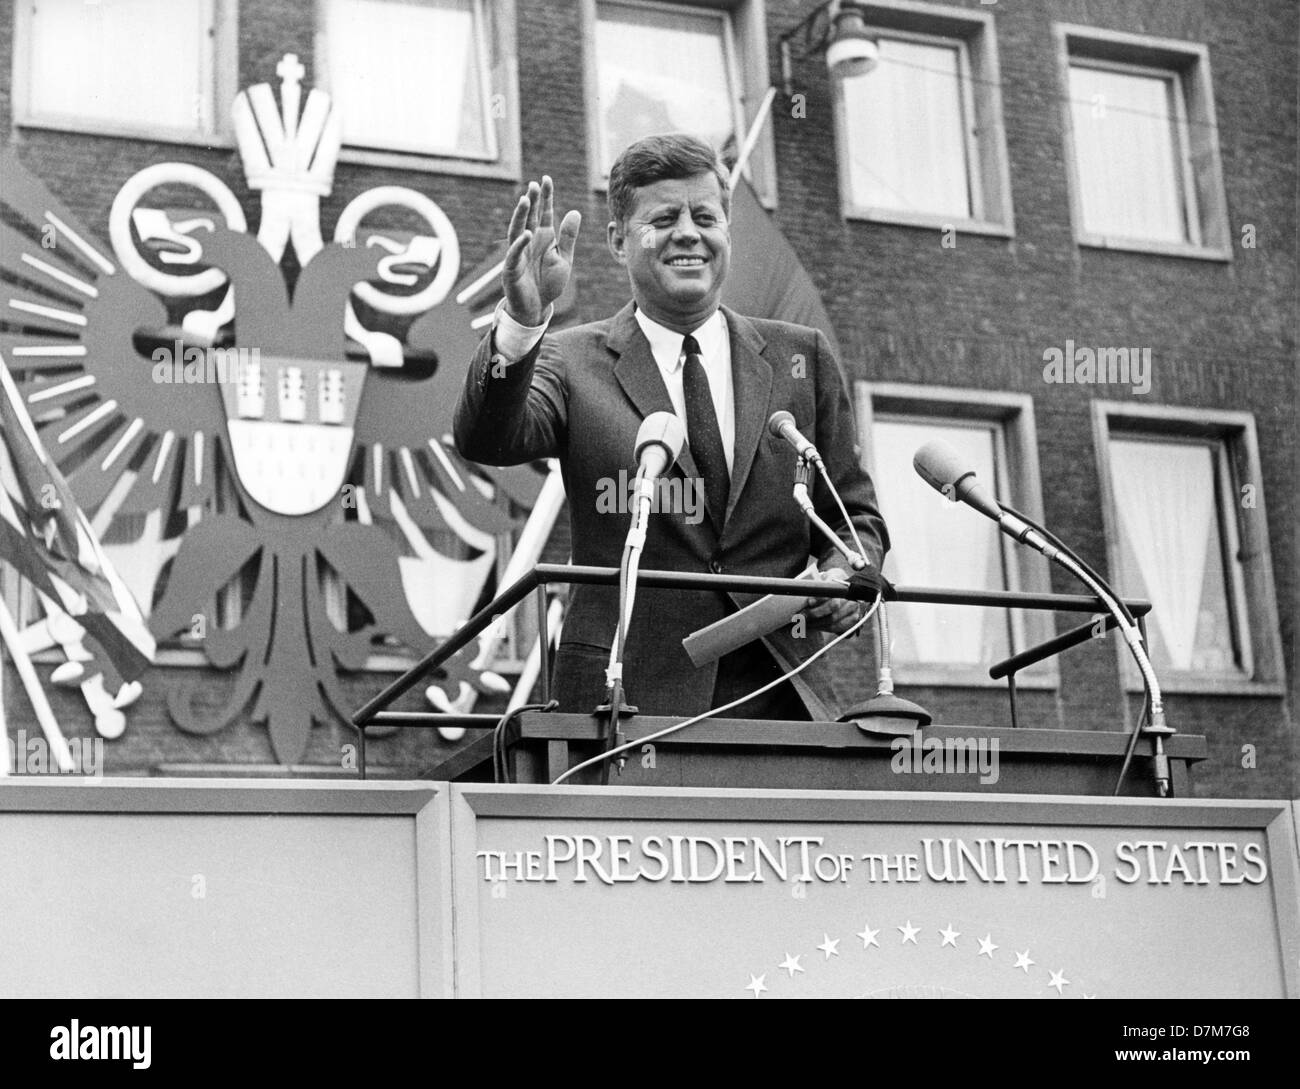 US President John F. Kennedy is waving to an excited crowd of people in front of the city hall in Cologne, on 23 - Stock Image